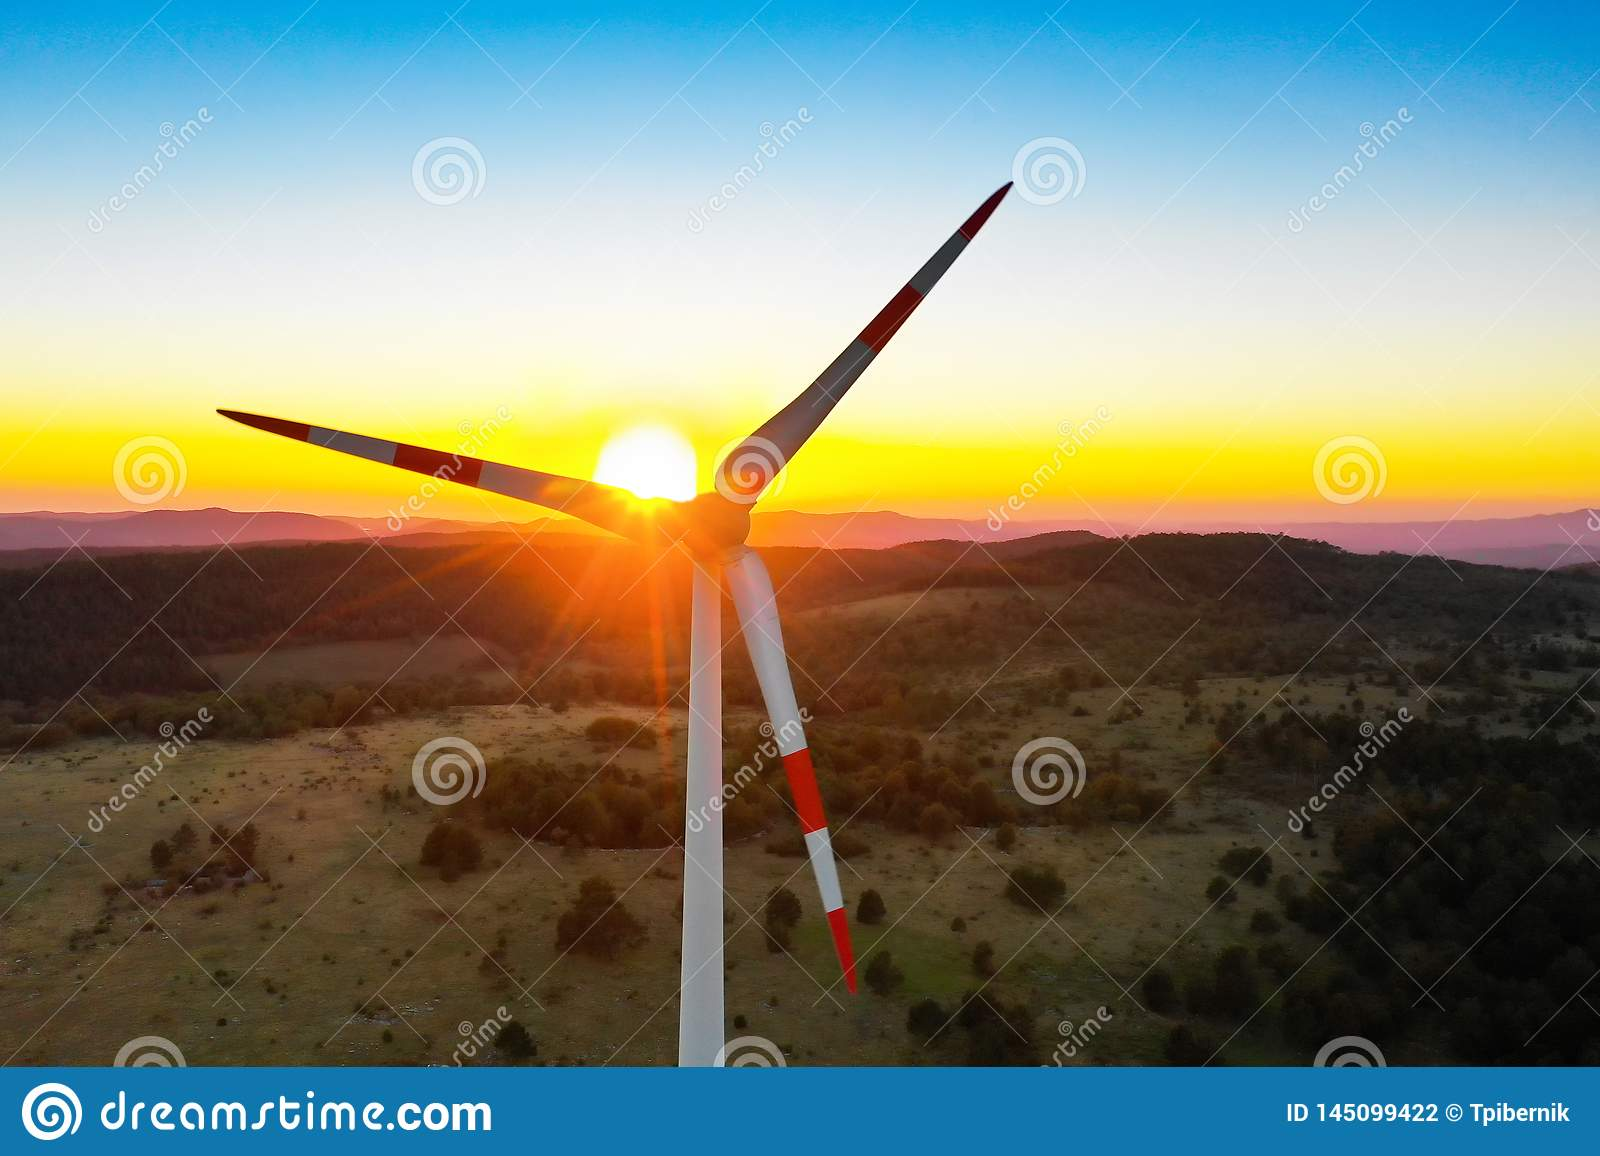 Lonely windmill turbine peacefully rotating blades through the wind in the beautiful sunset sky